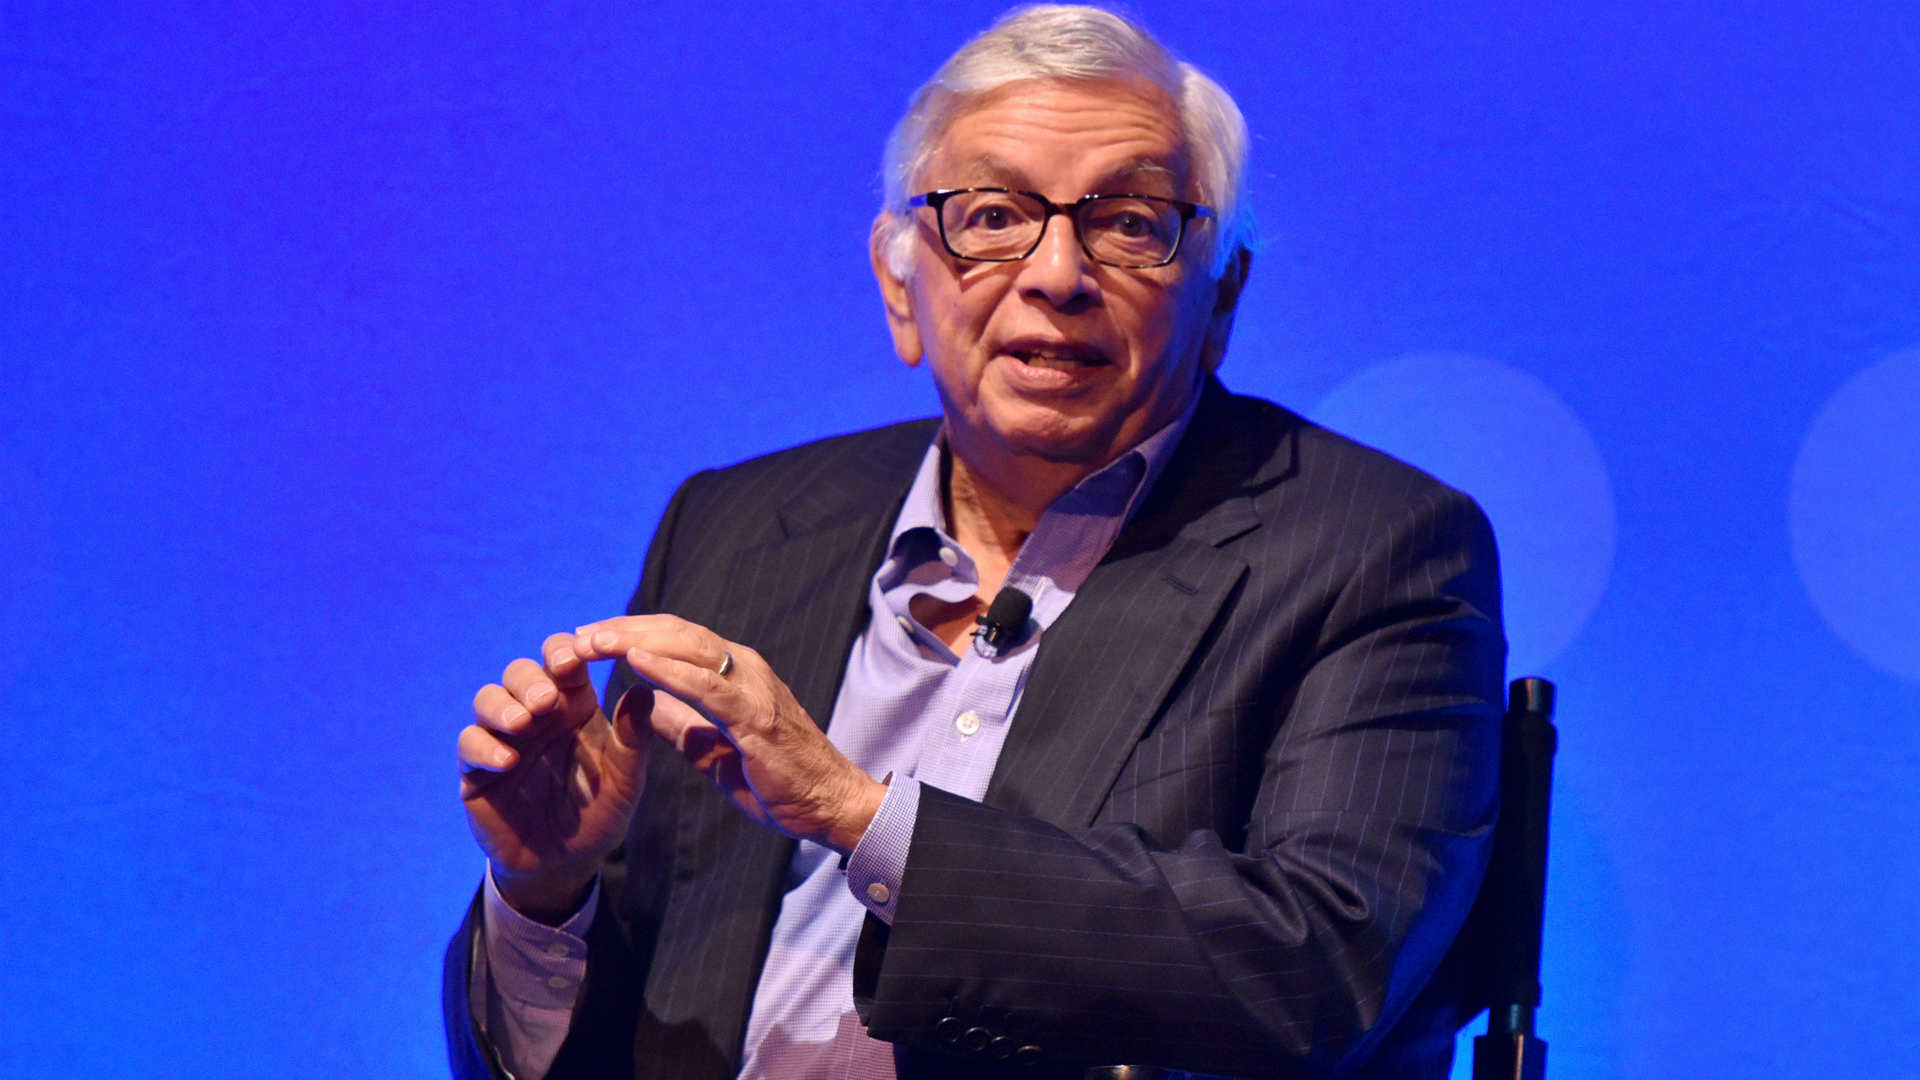 David Stern Reverses Stance, Says Medical Marijuana Should Be Allowed in National Basketball Association